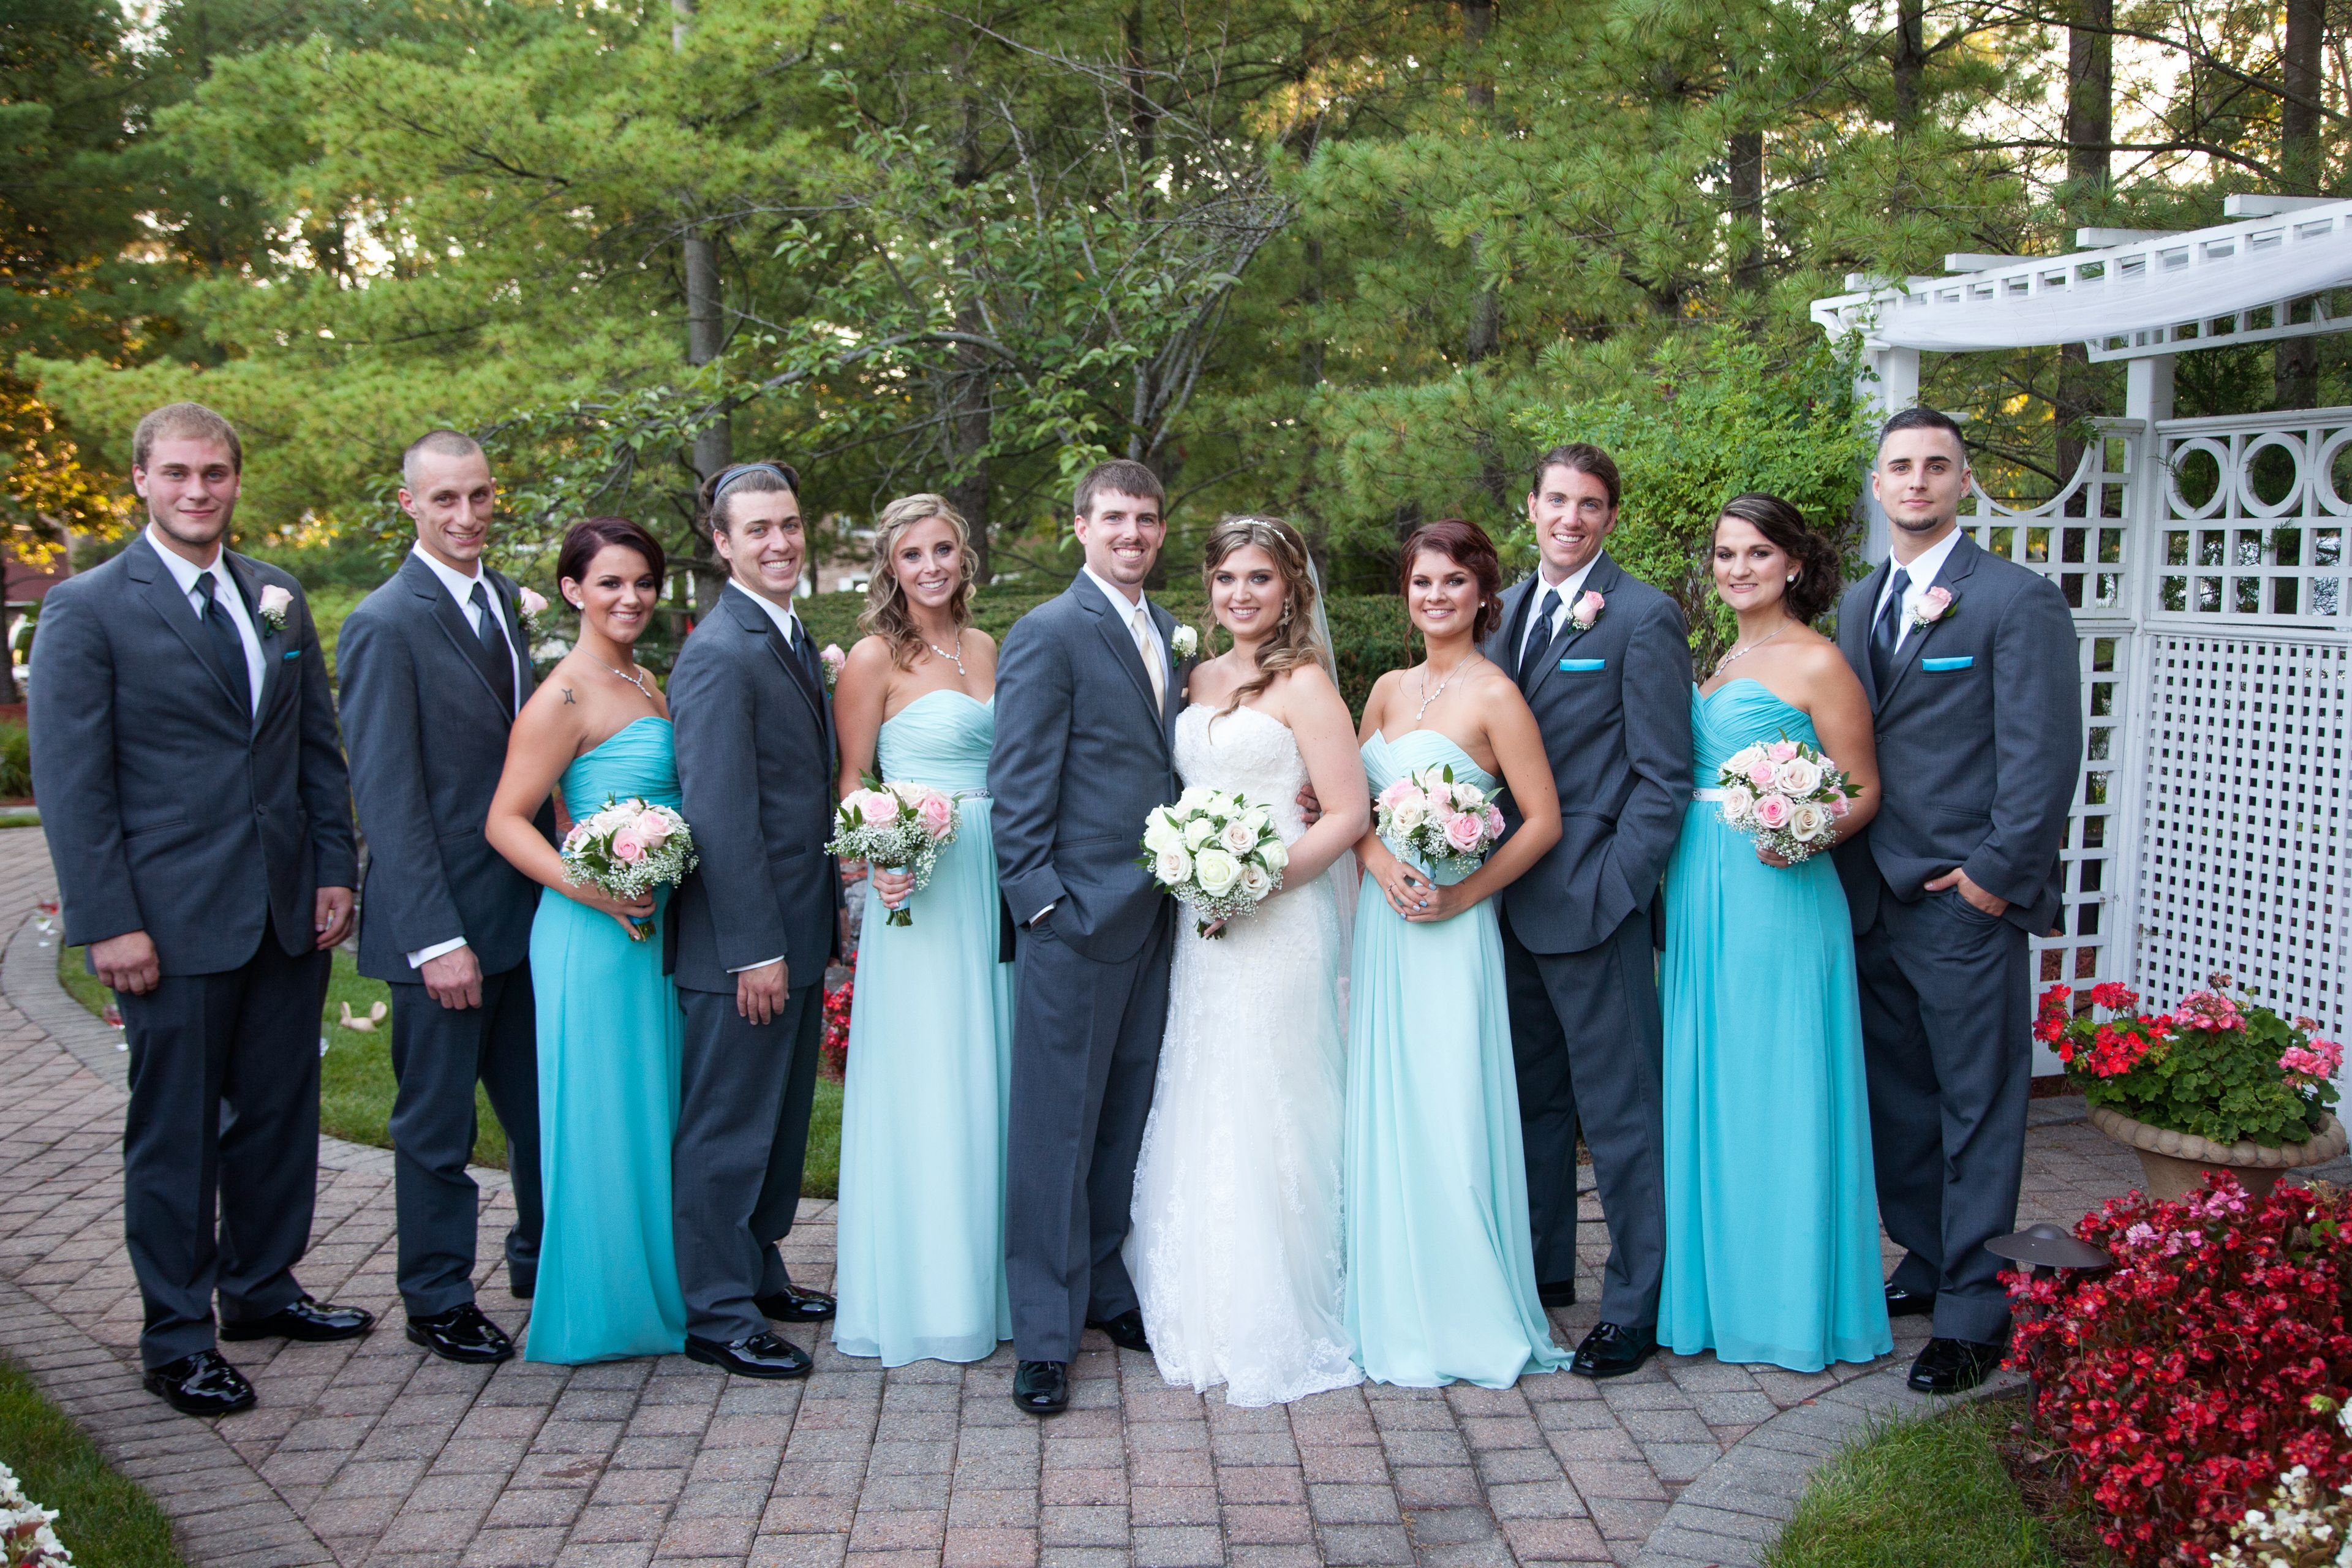 Kim and her bridal party